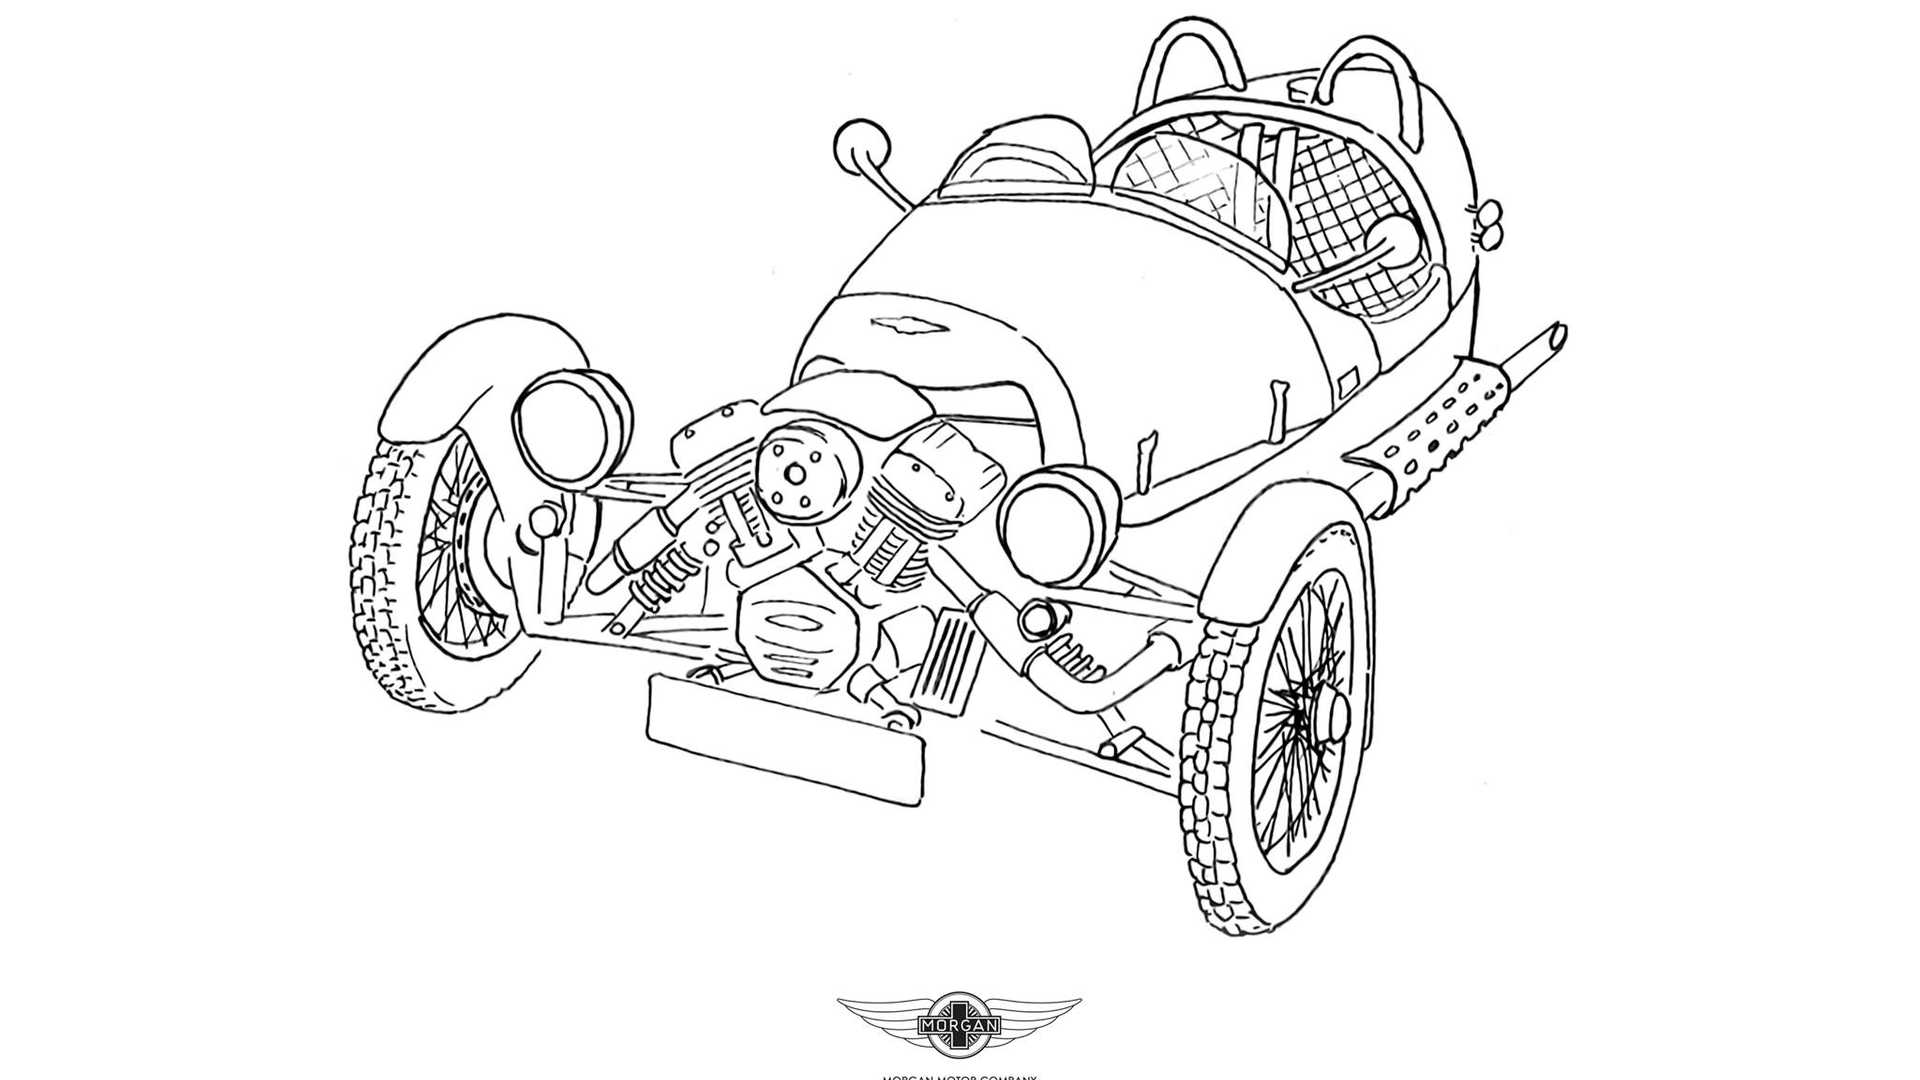 morgan-coloring-book-pages-3